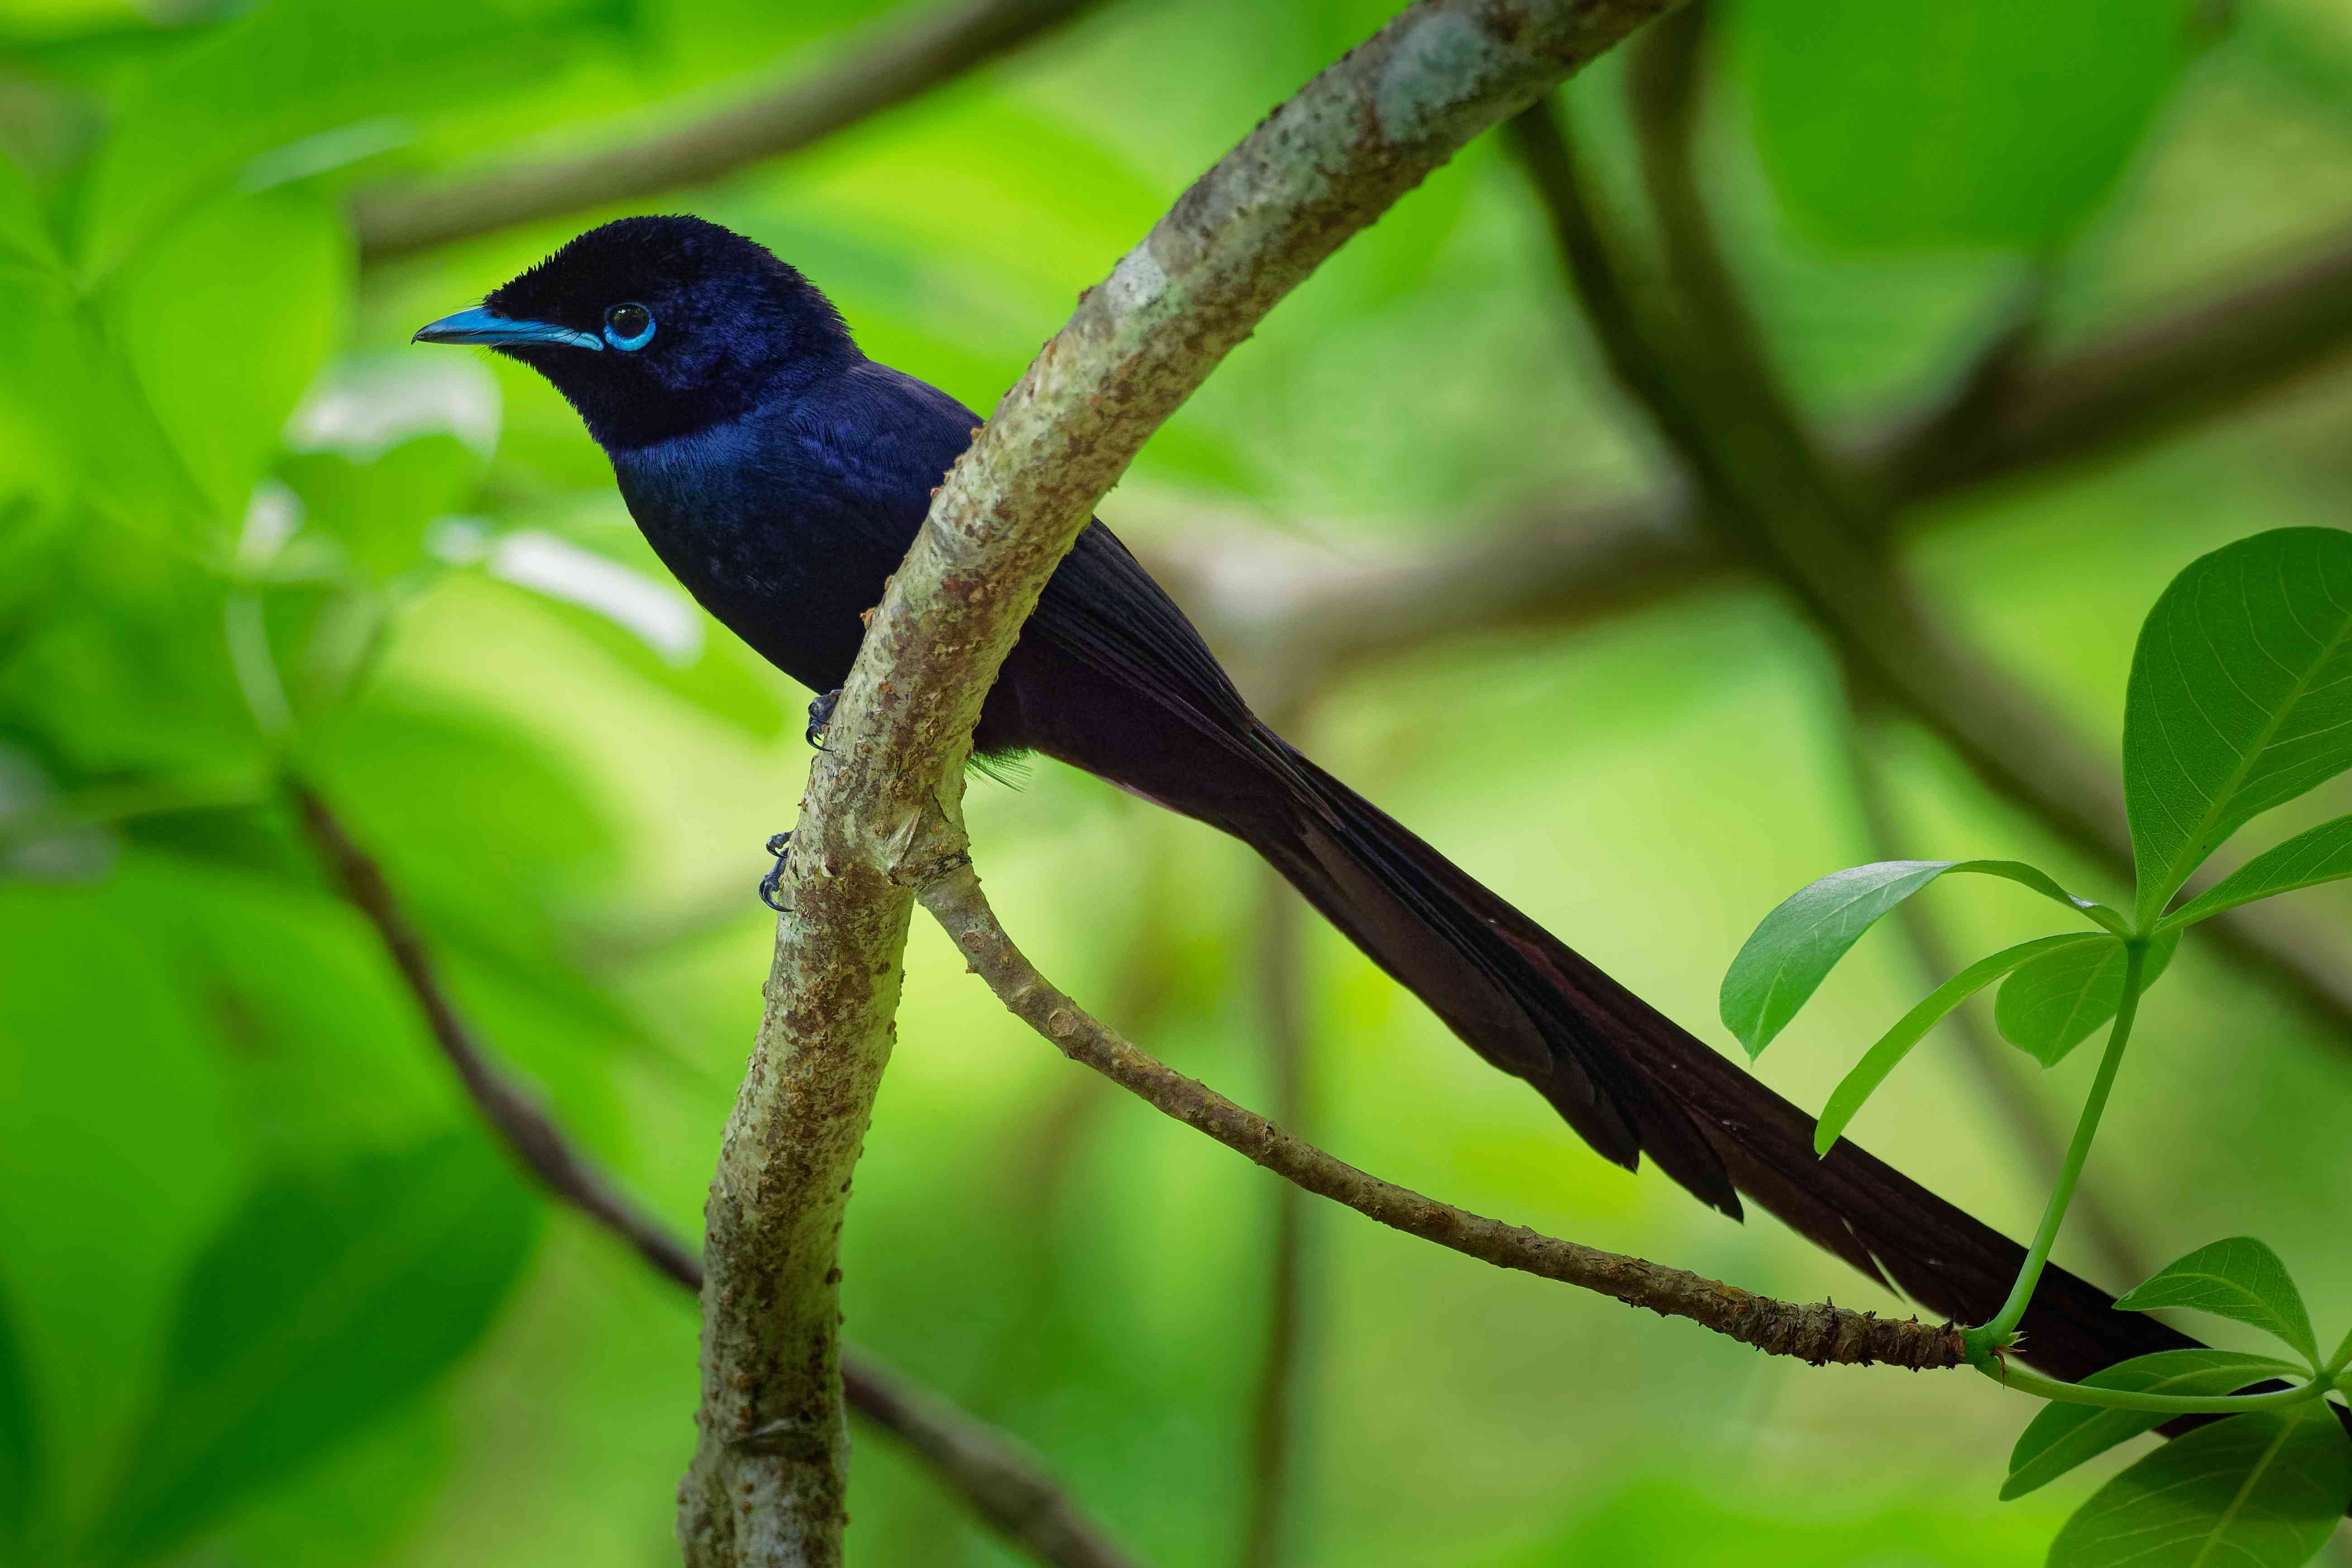 Seychelles paradise flycatcher - Terpsiphone corvina rare bird from Terpsiphone within the family Monarchidae, forest-dwelling bird endemic to the Seychelles island of La Digue